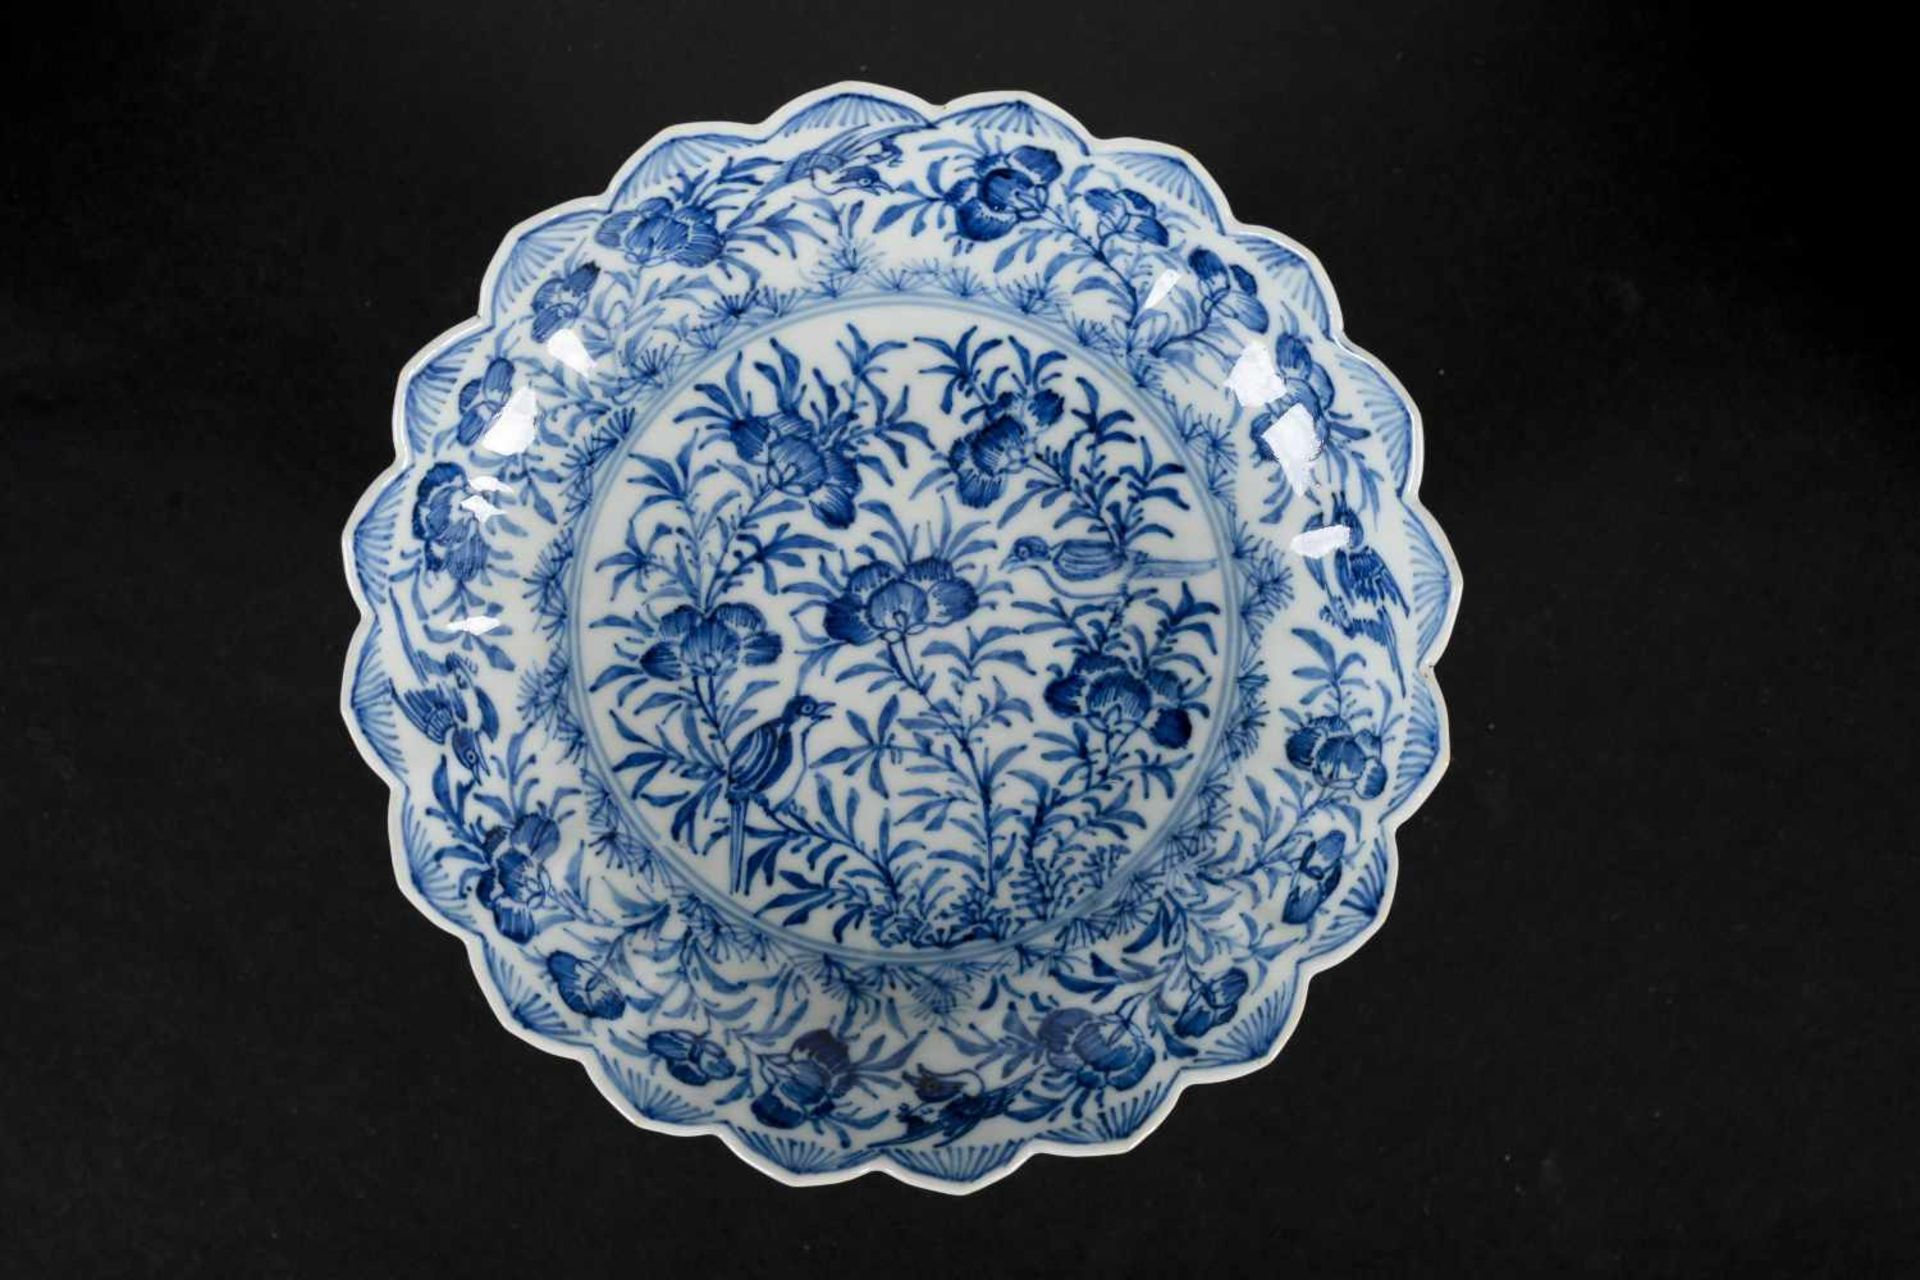 A set of six blue and white porcelain deep saucers with scalloped rim, decorated with flowers and - Bild 5 aus 8